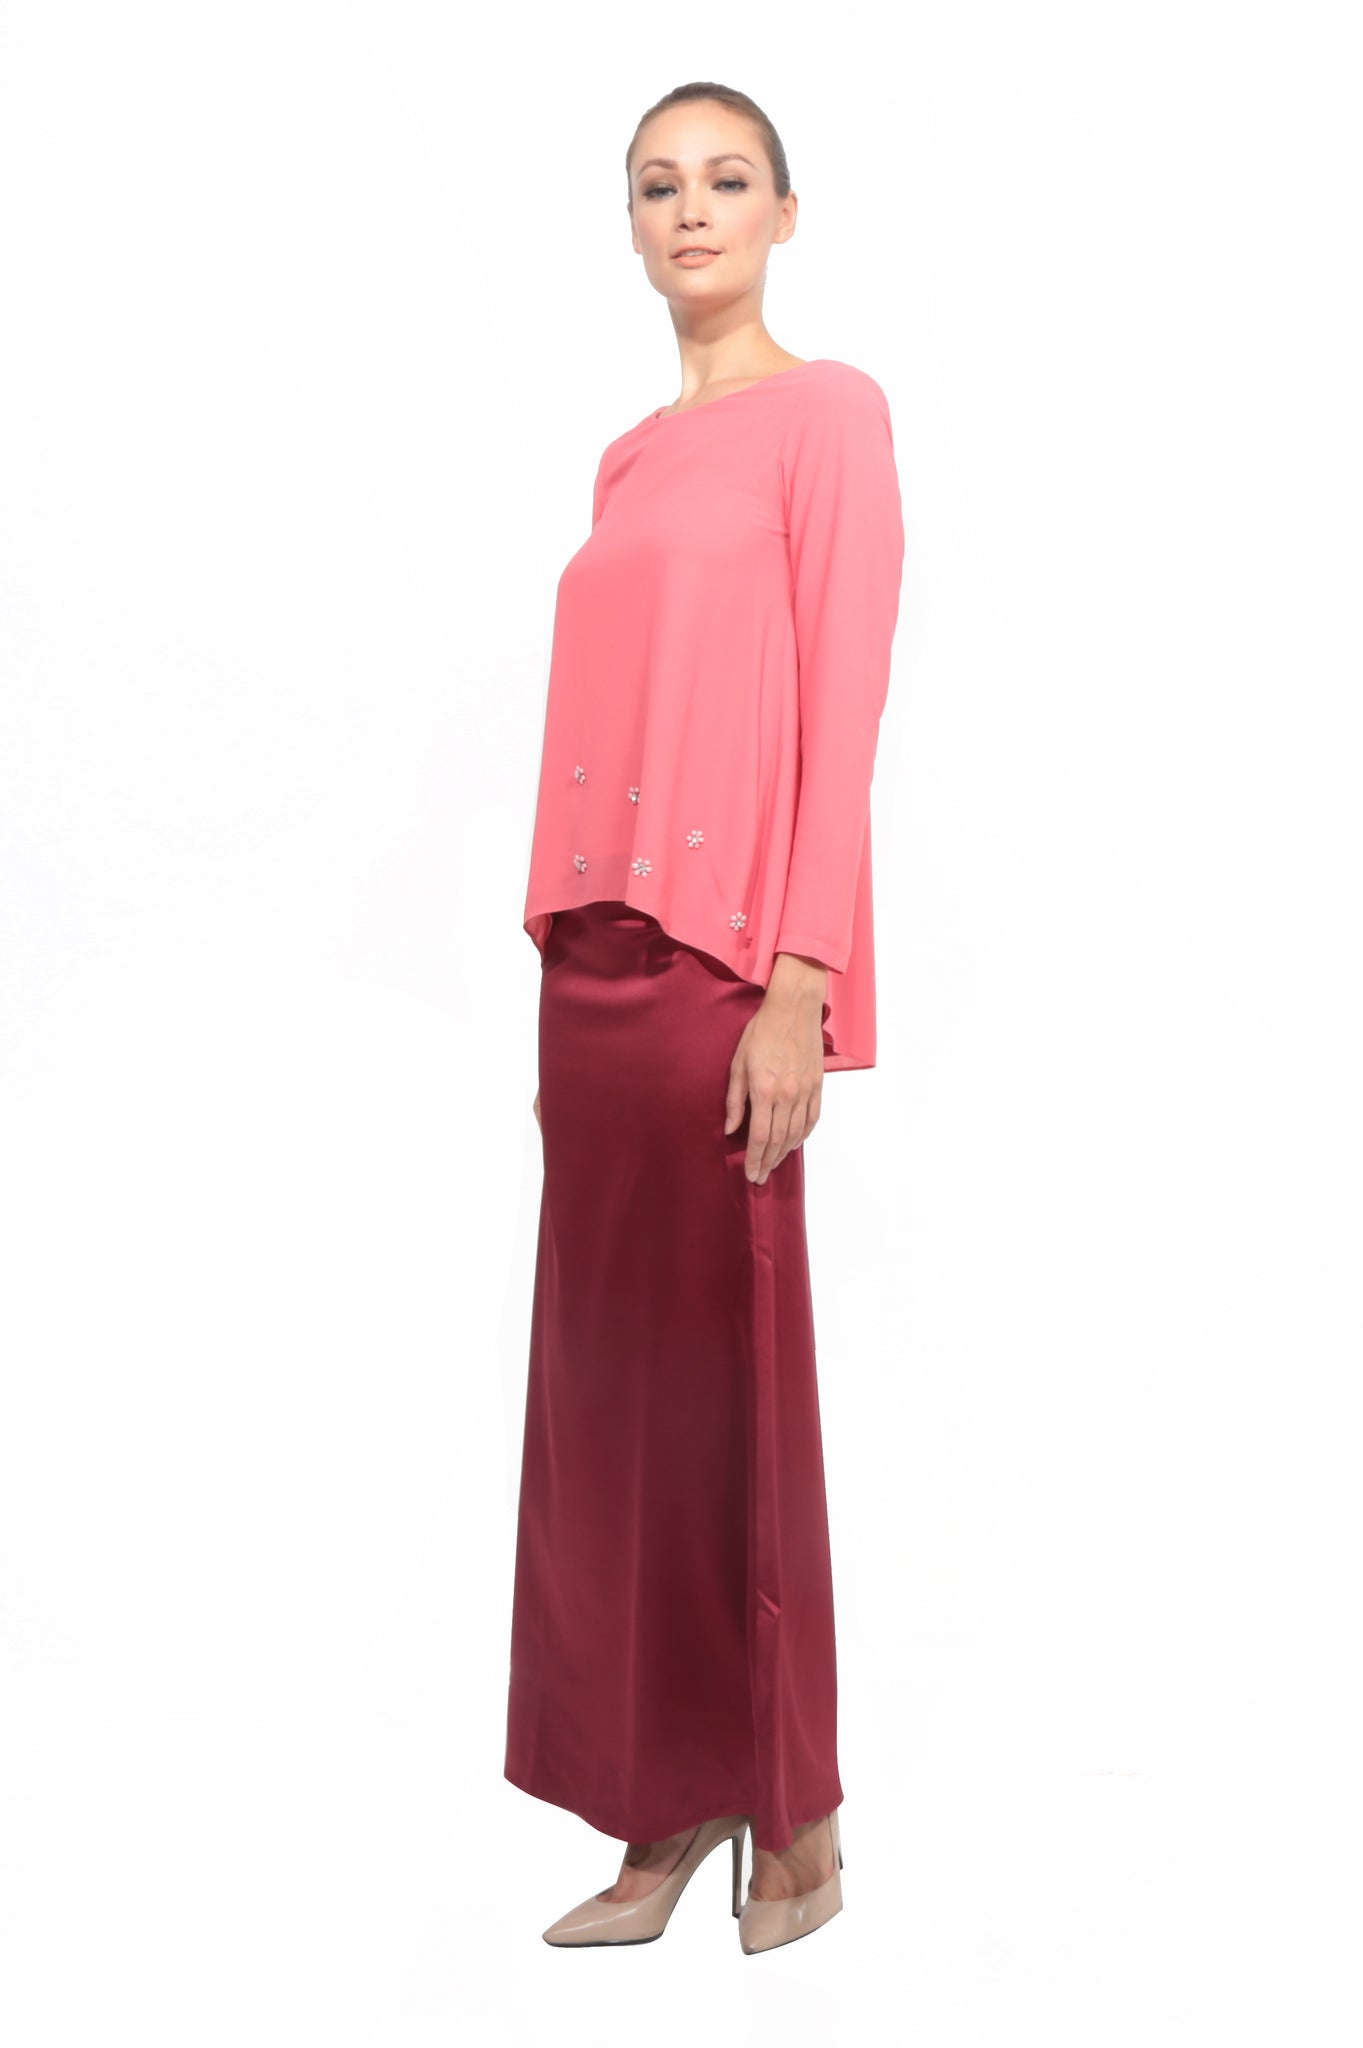 Chiffon Baju Kurung in Cherry Rose Pink